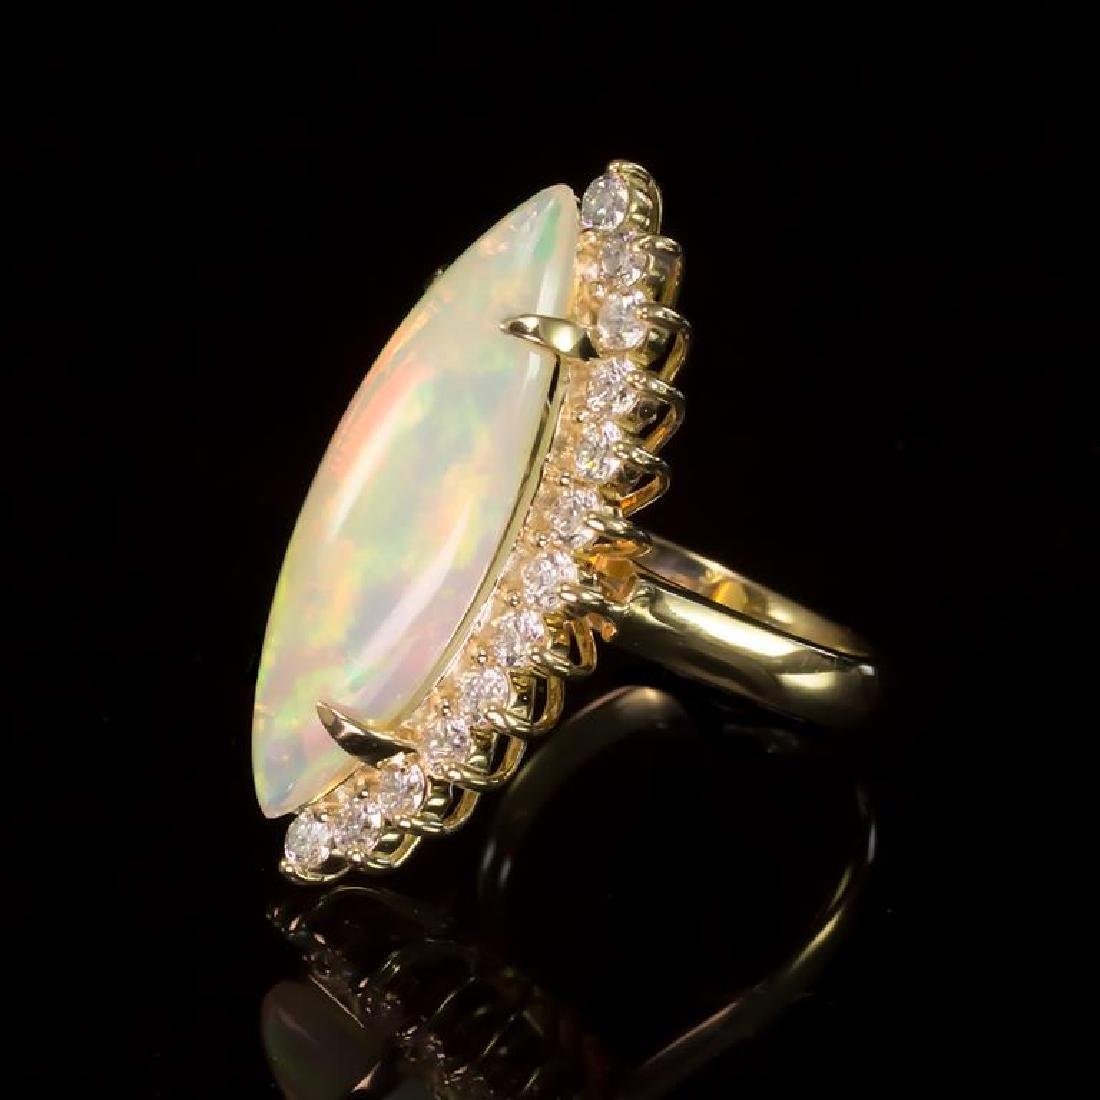 14K Gold 7.67ct Opal 1.95ct Diamond Ring - 2